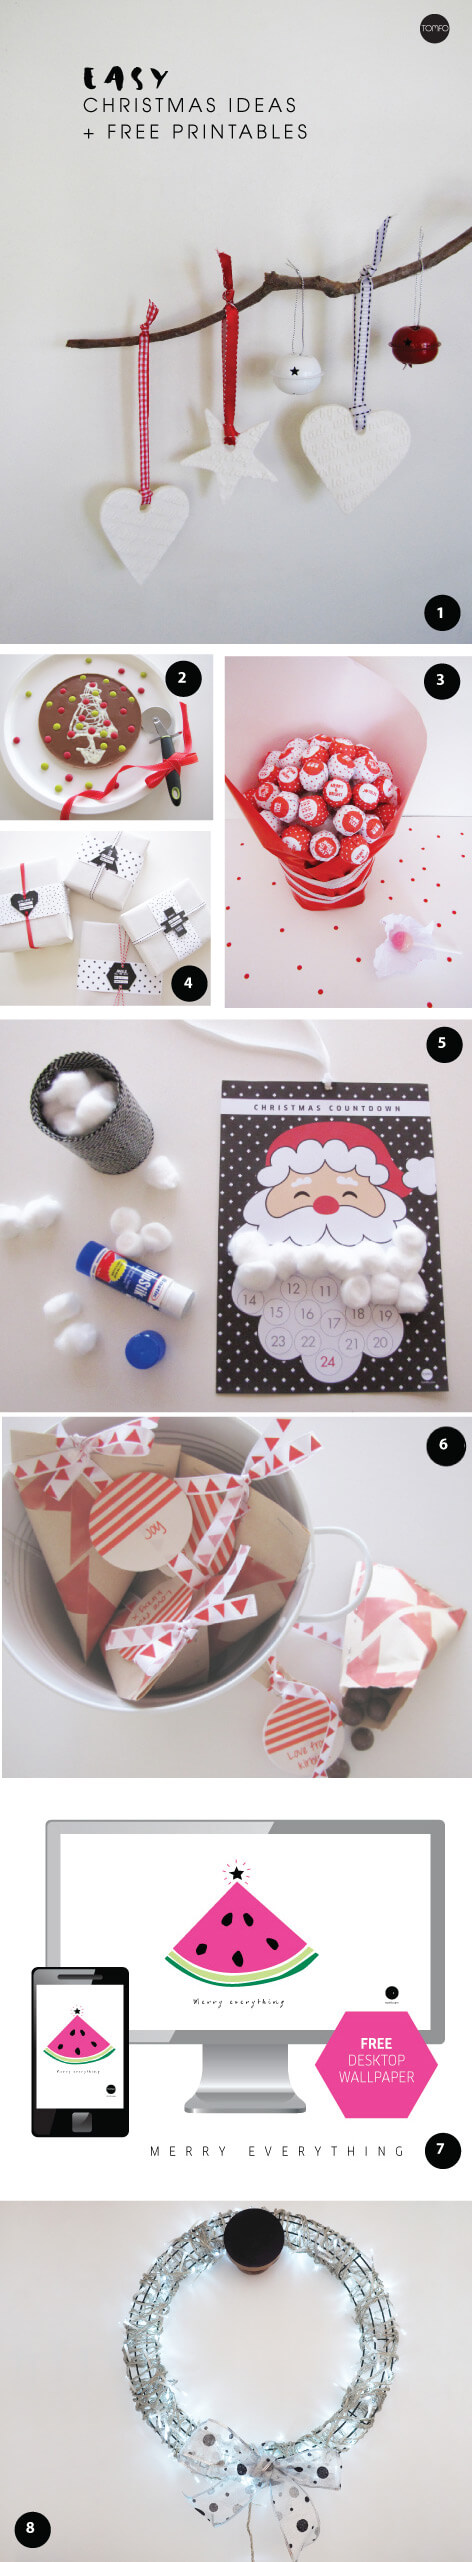 Christmas-ideas+FREE-PRINTABLES-Tomfo